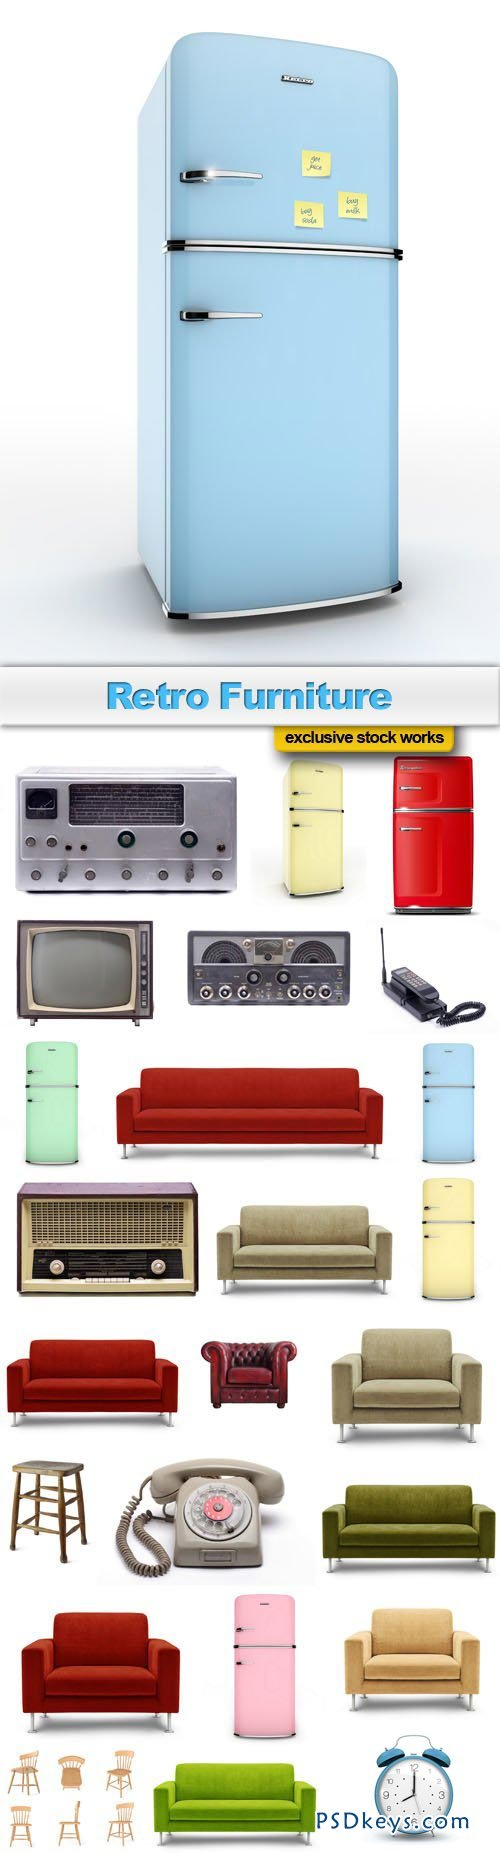 Retro Furniture - 25xJPEG